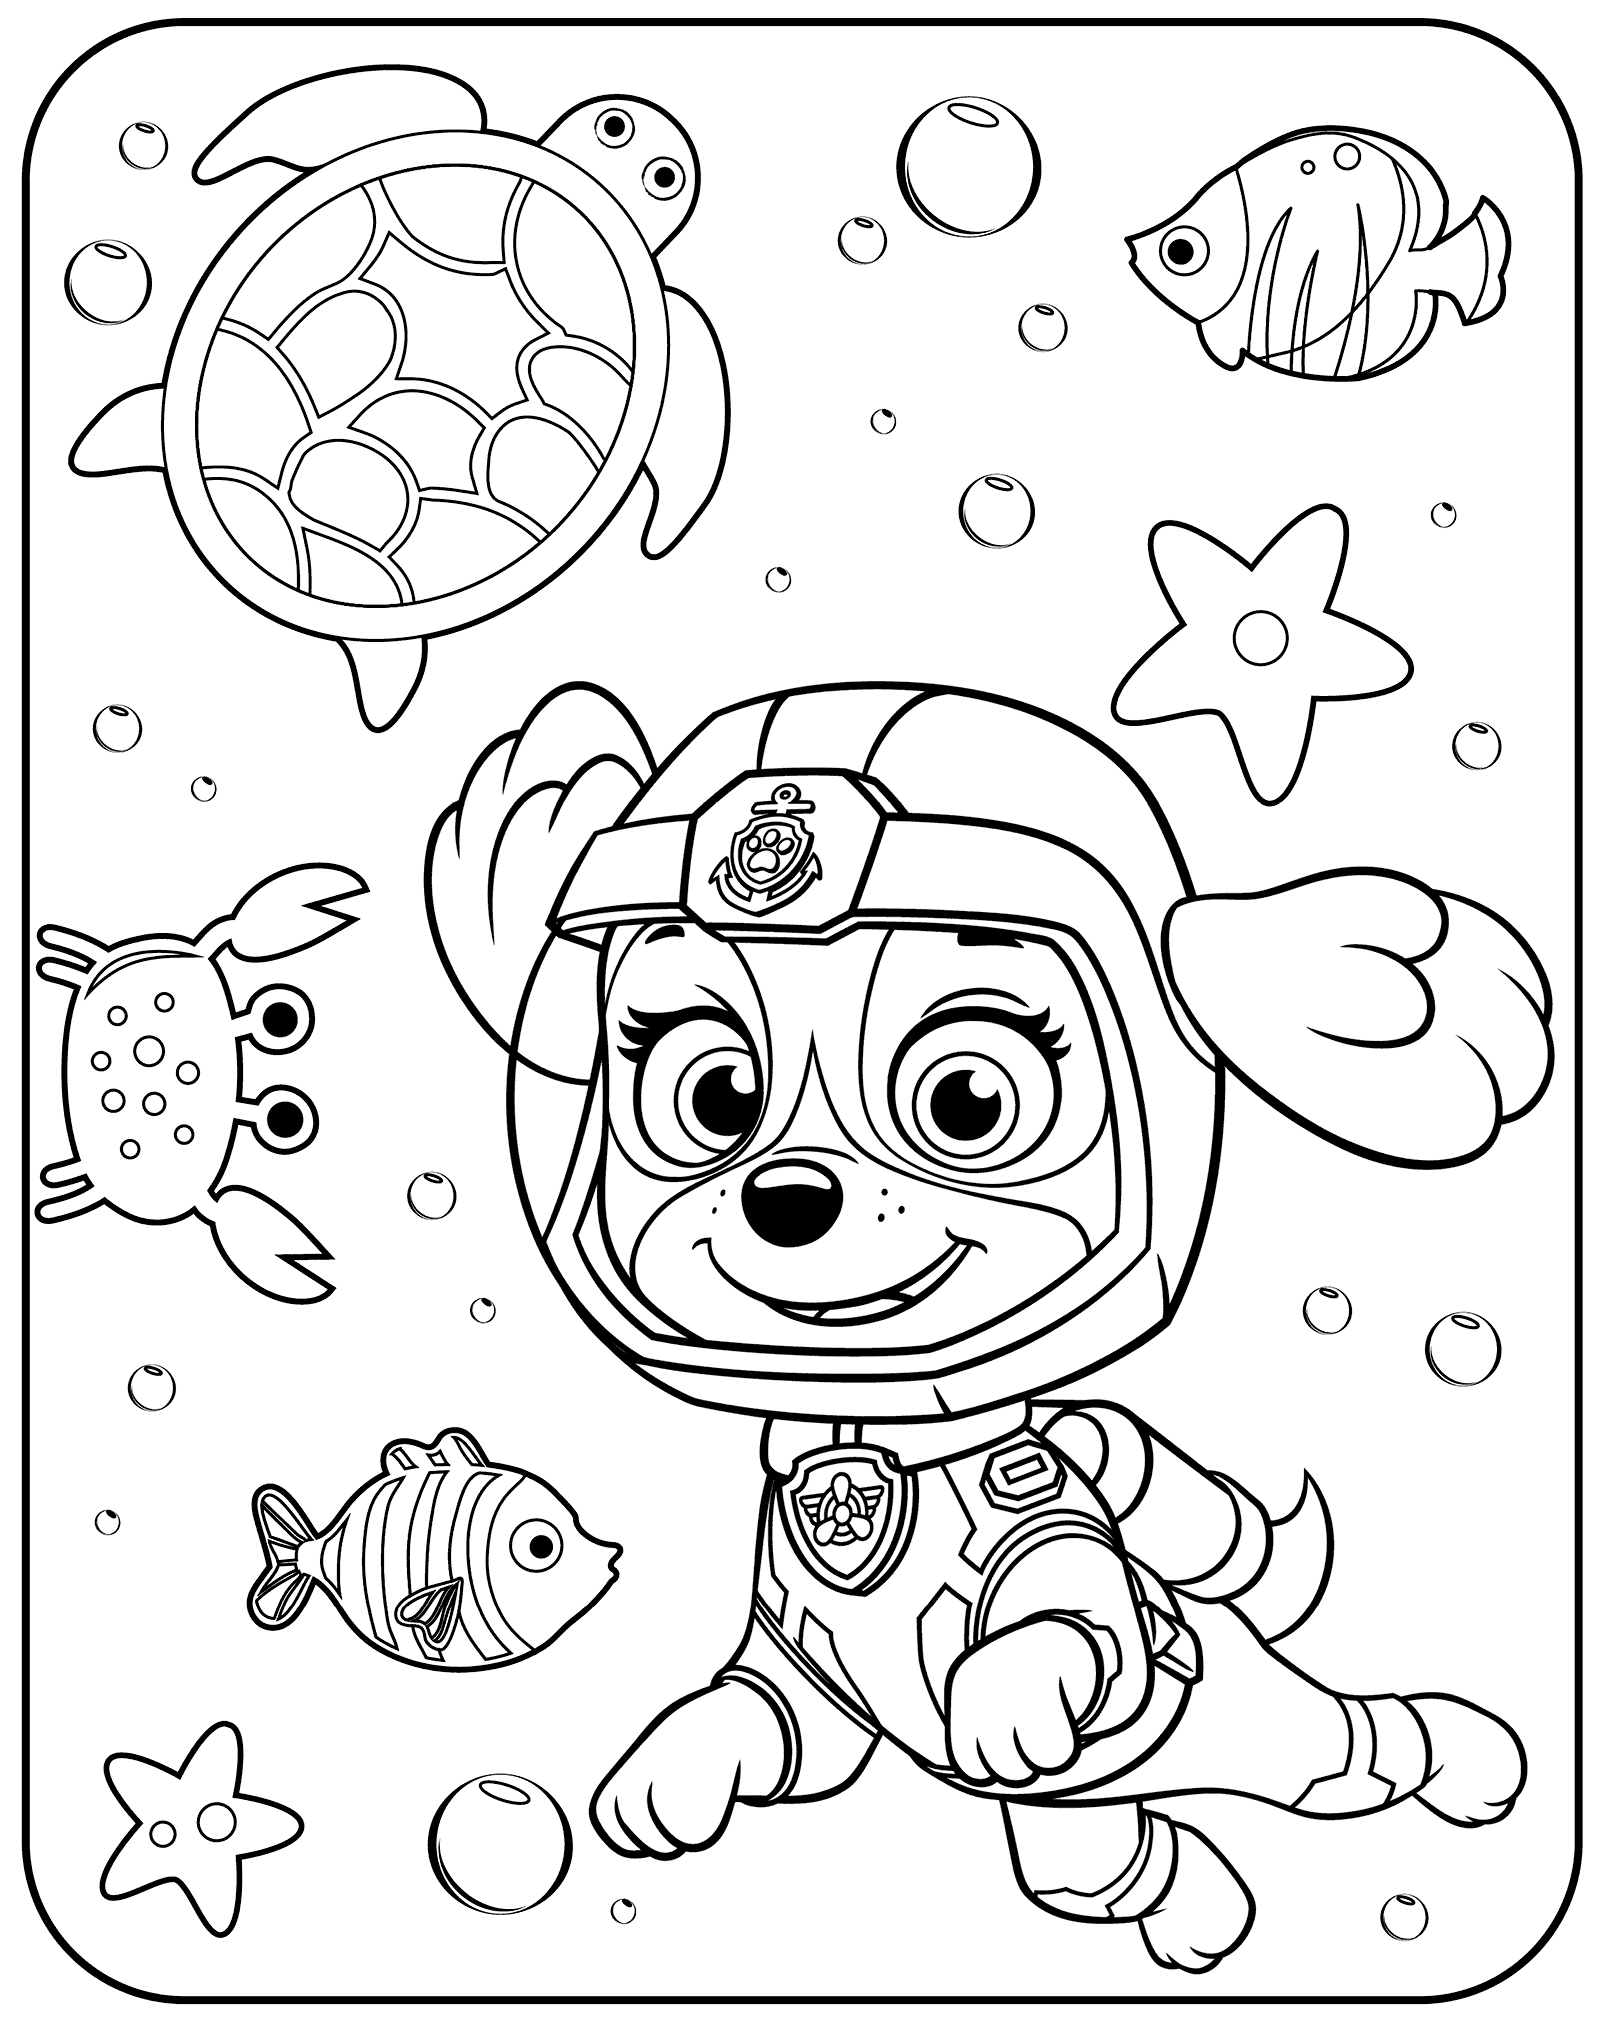 1600x2020 Free Printable Paw Patrol Coloring Pages For Kids